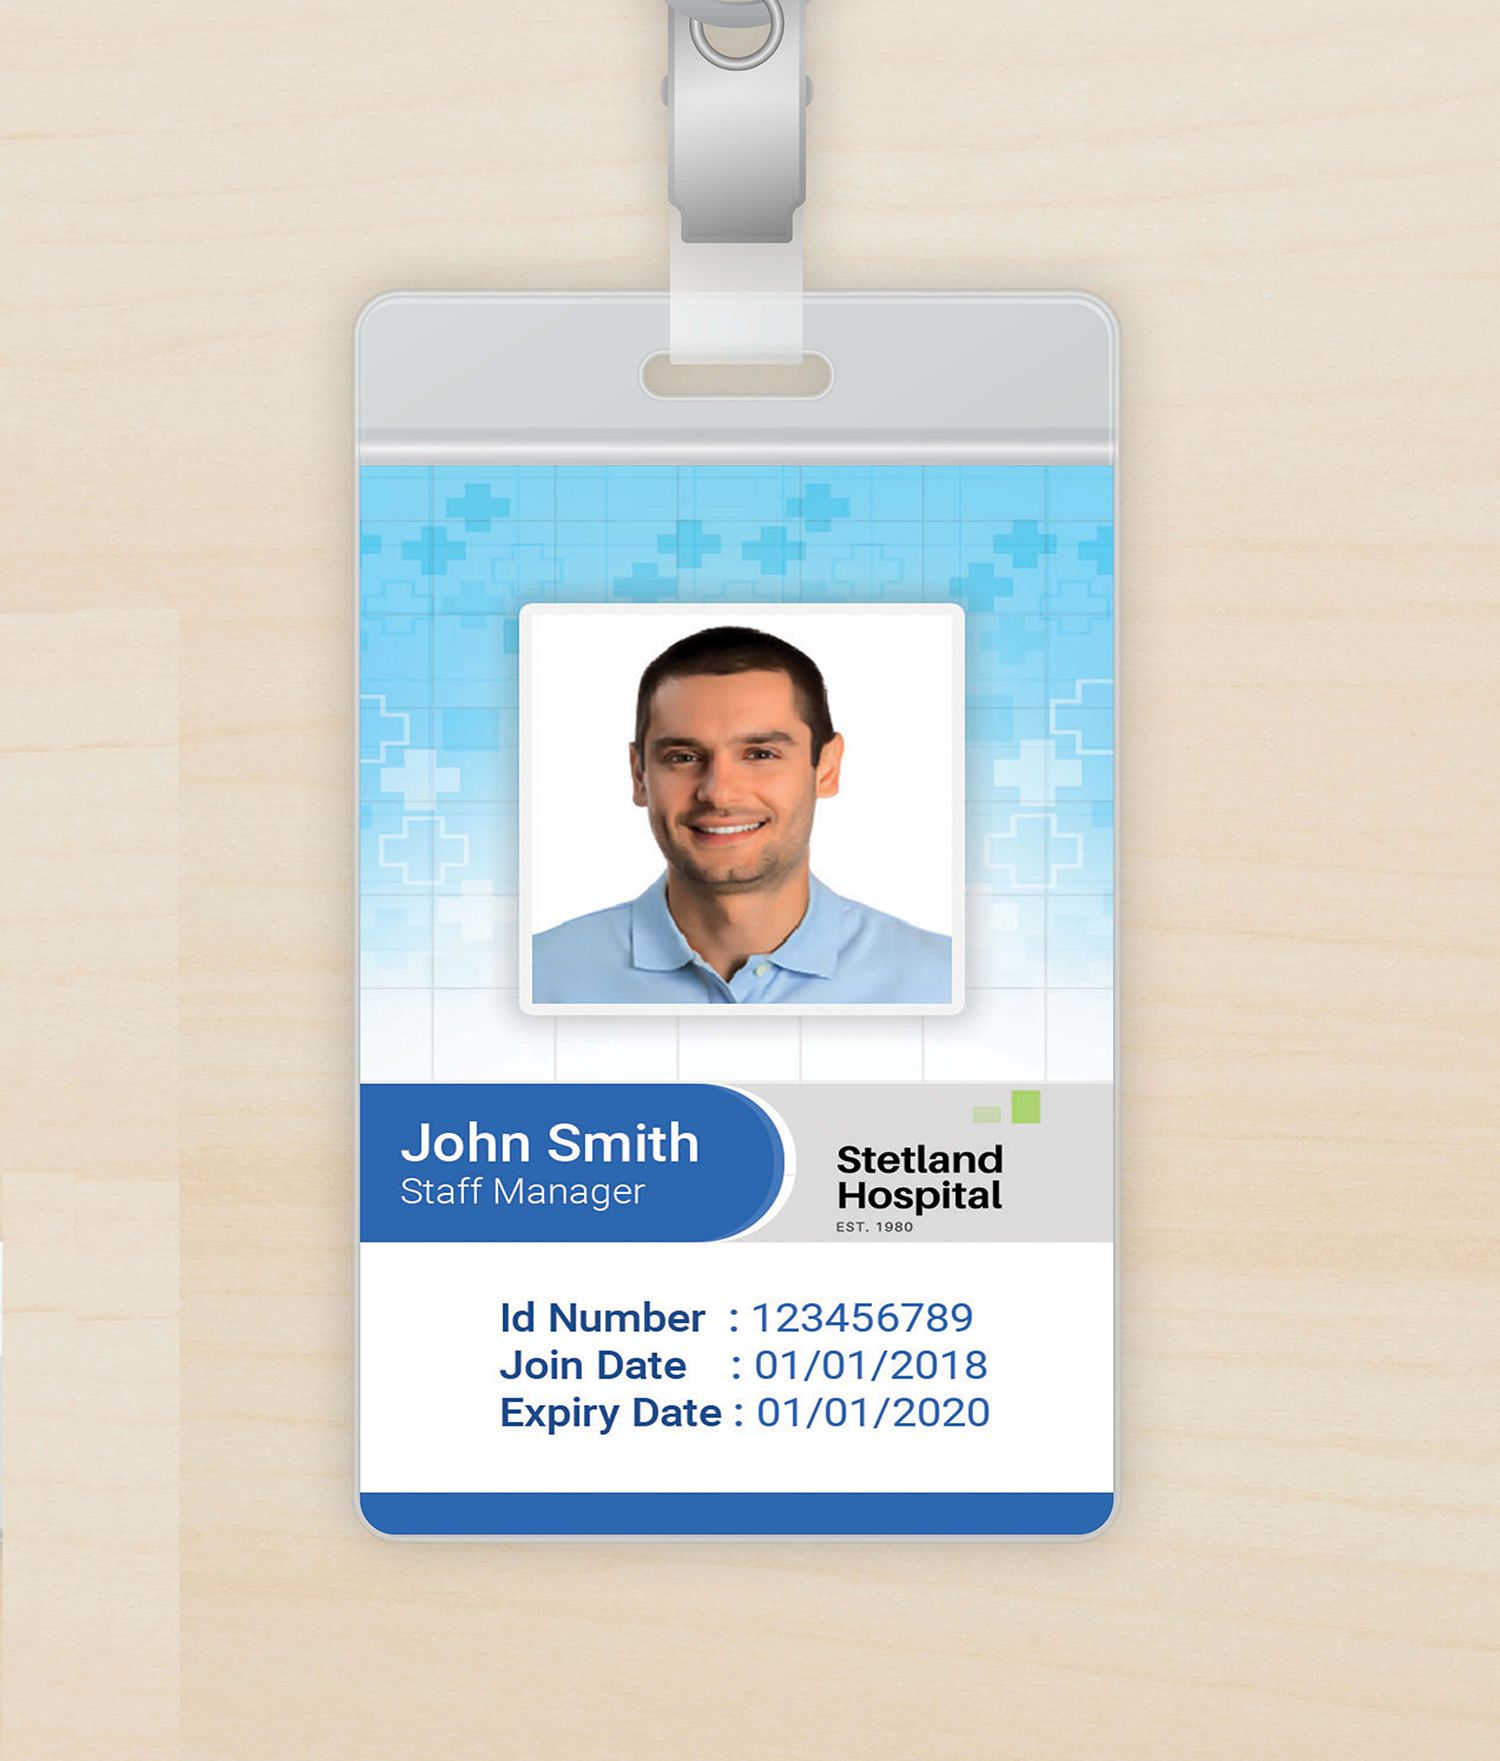 011 Employee Id Badge Template Free Download Ideas Mockup Pertaining To Hospital Id Card Template Great Sample Id Card Template Employees Card Badge Template Id badge template free online